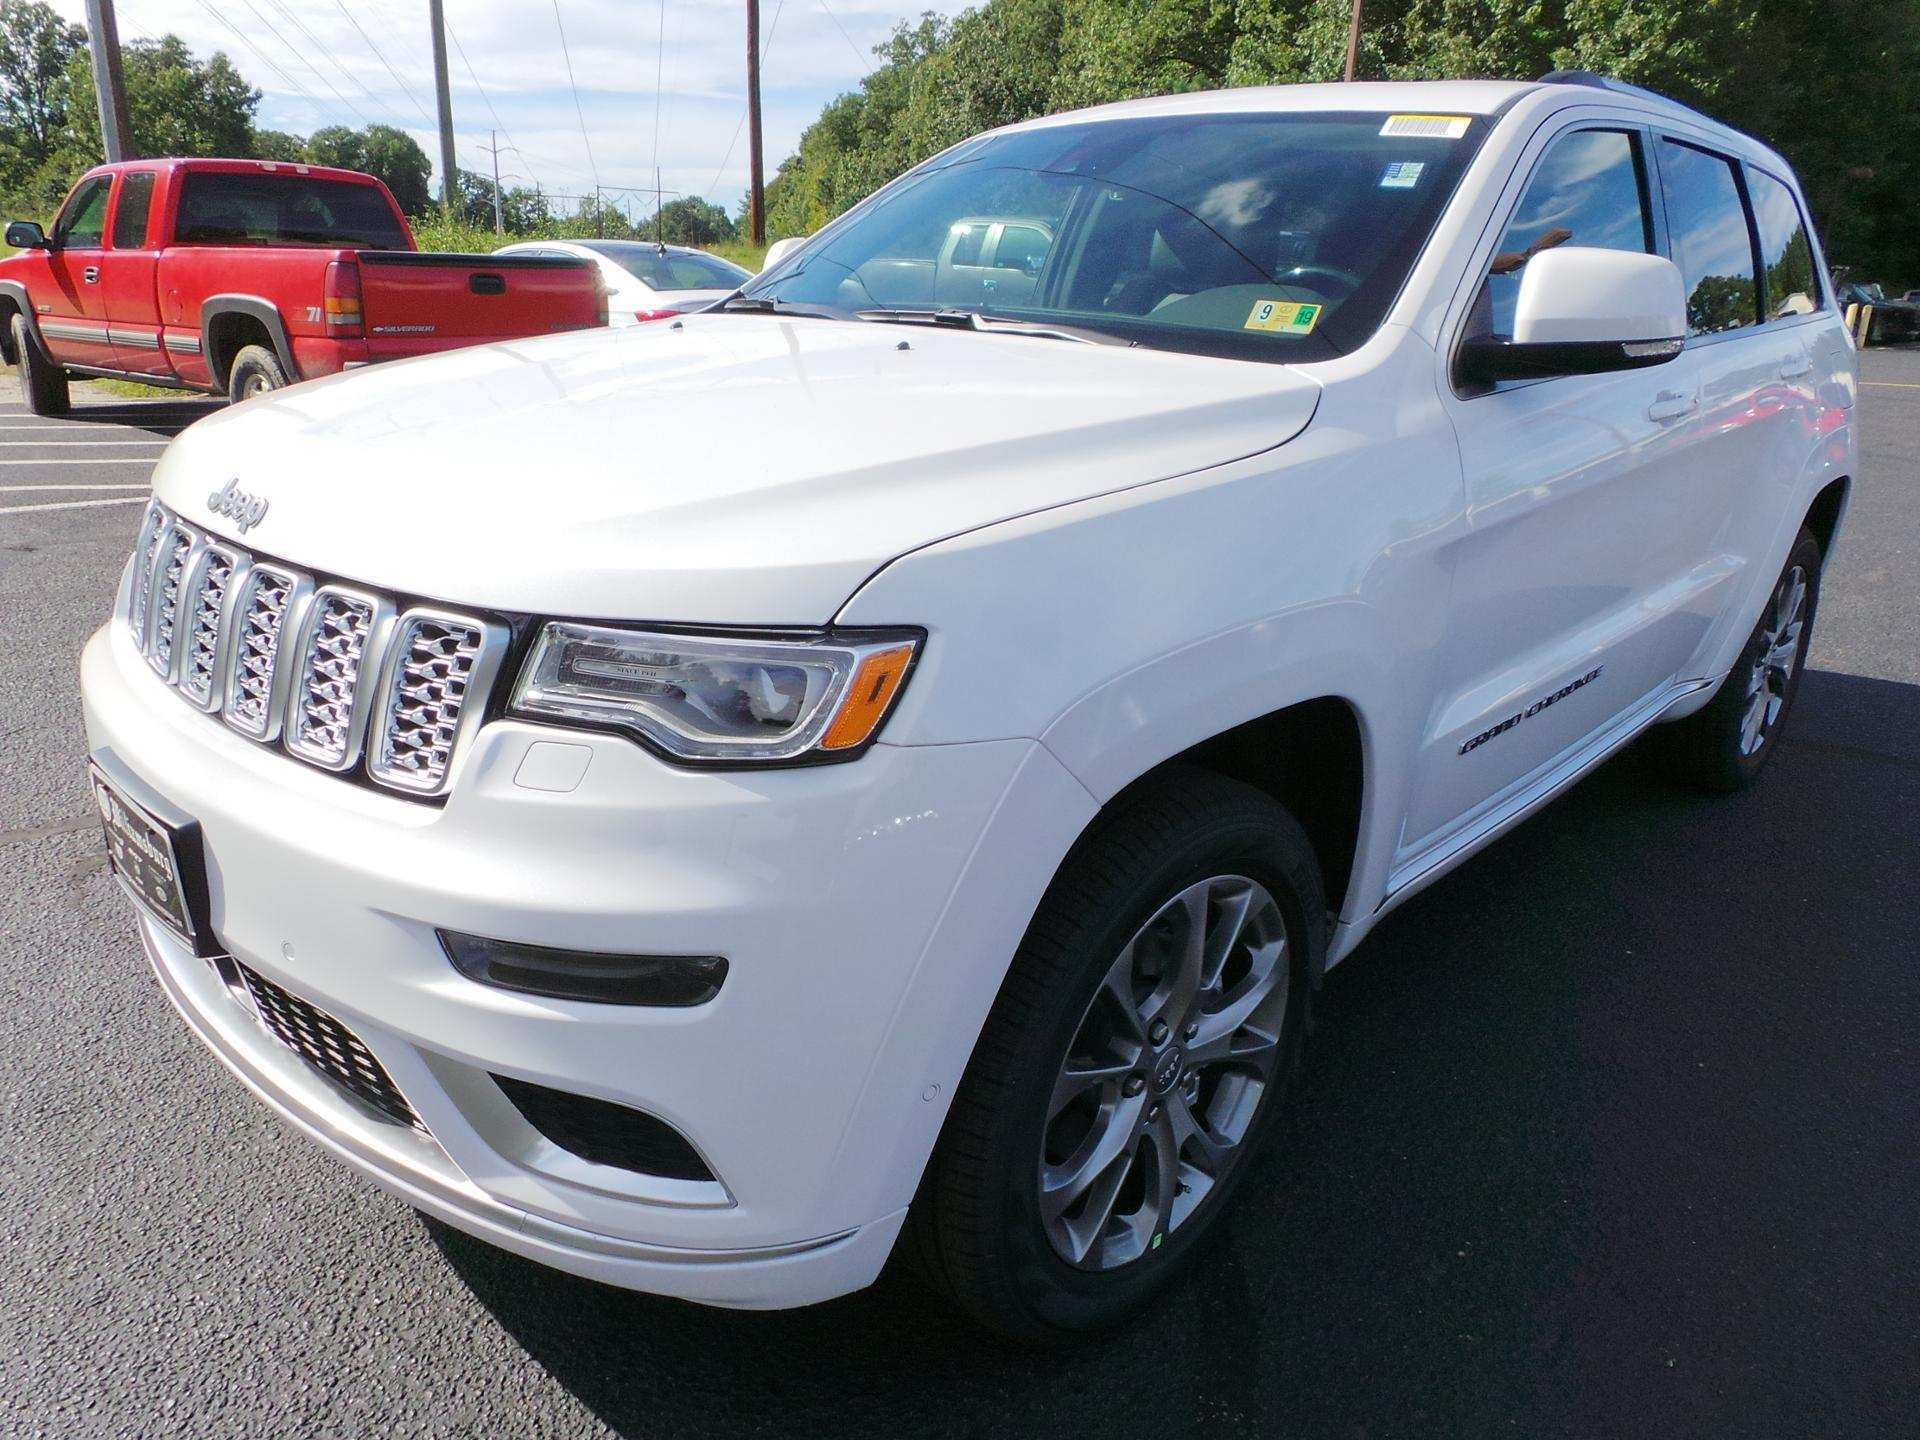 22 Concept of 2019 Jeep Grand Cherokee Spesification with 2019 Jeep Grand Cherokee